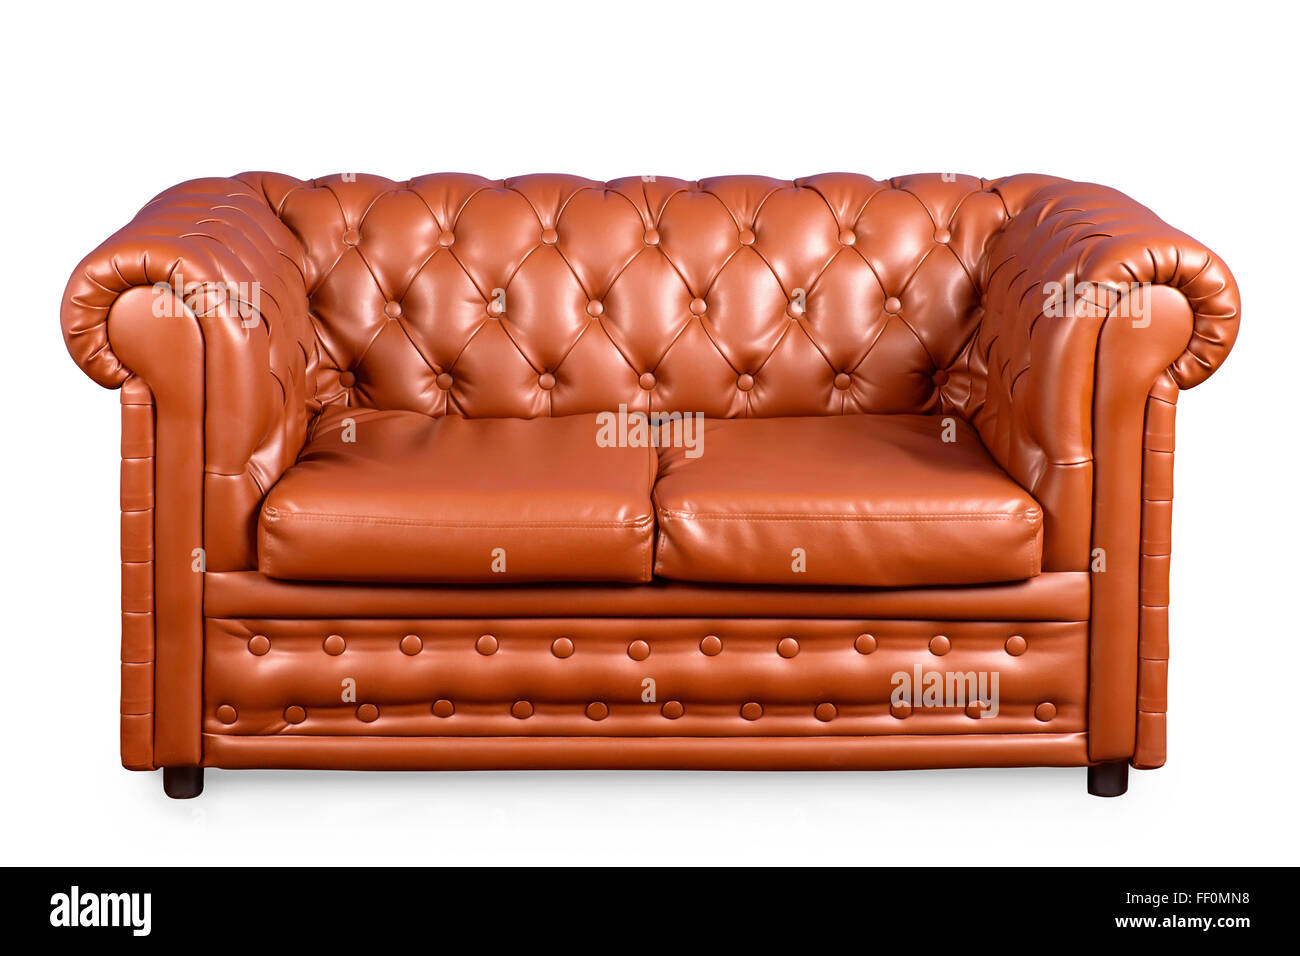 Ledersofas Willhaben Vintage Leather Couch Isolated On White With Clipping Path ...